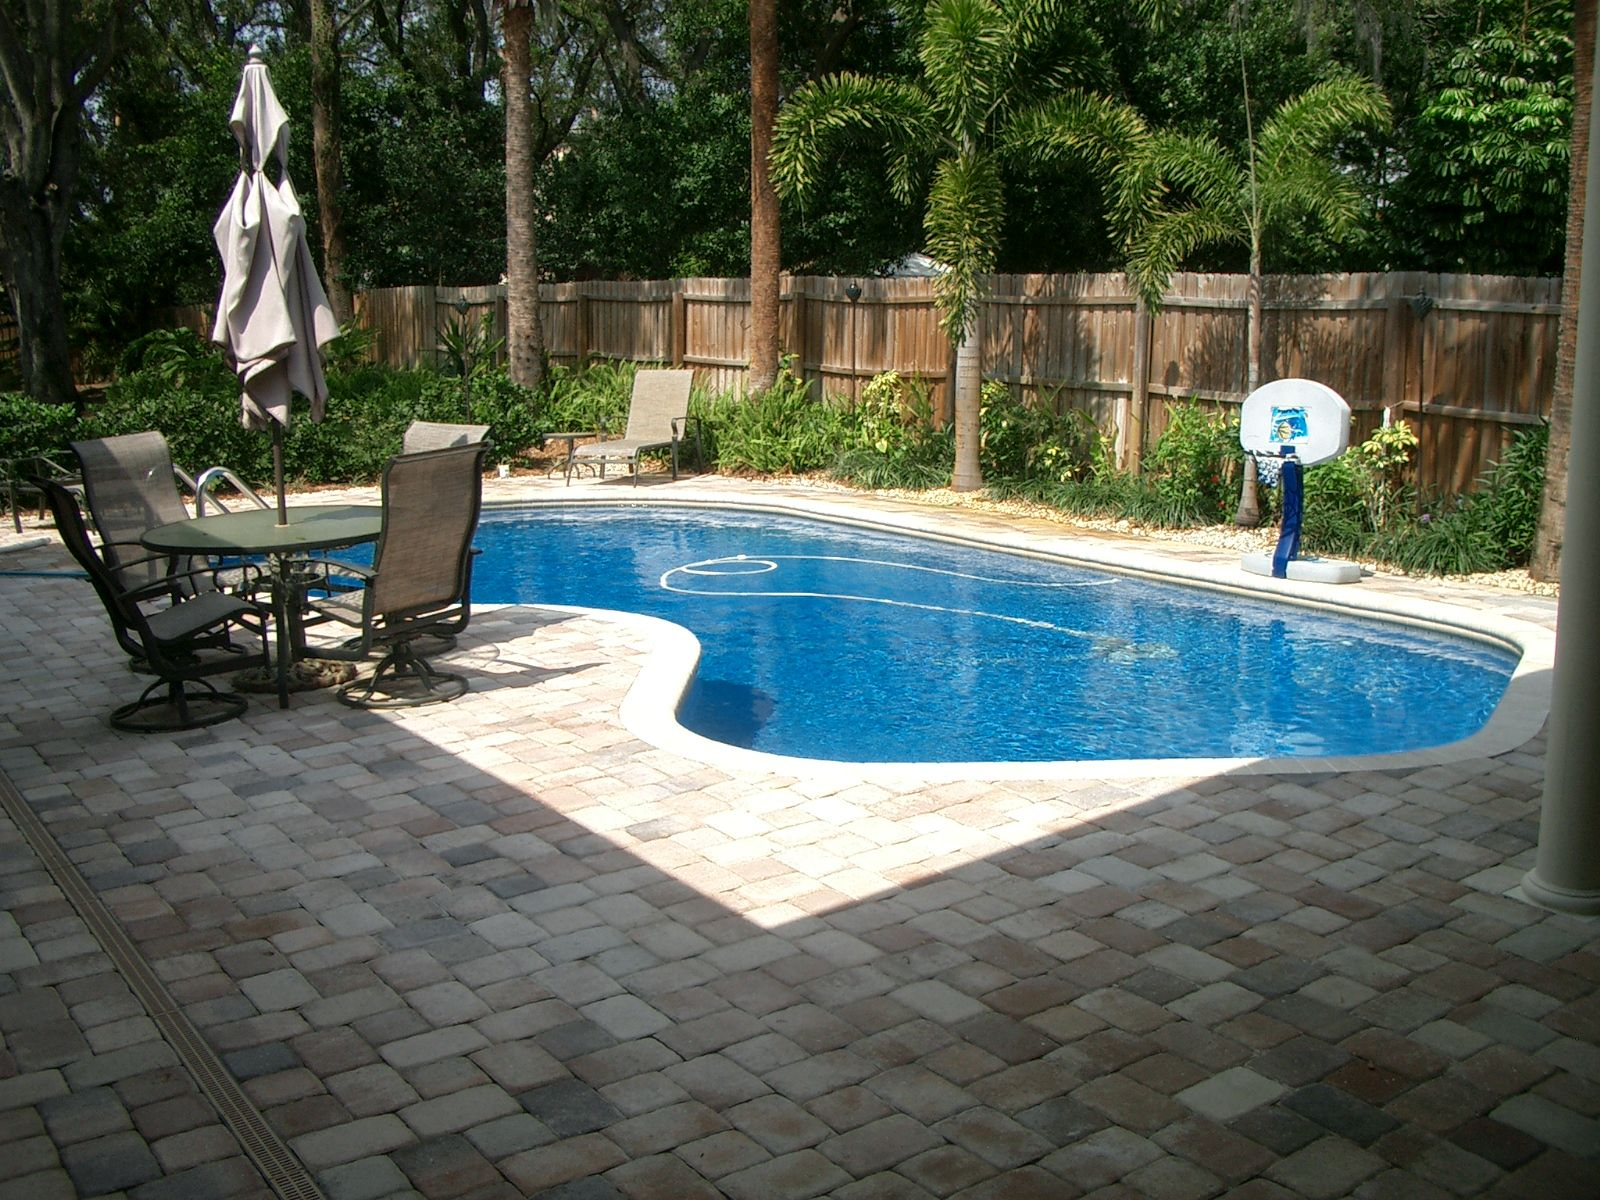 Backyard Landscaping Ideas Swimming Pool Design [ Read More At  Www.homesthetics.net